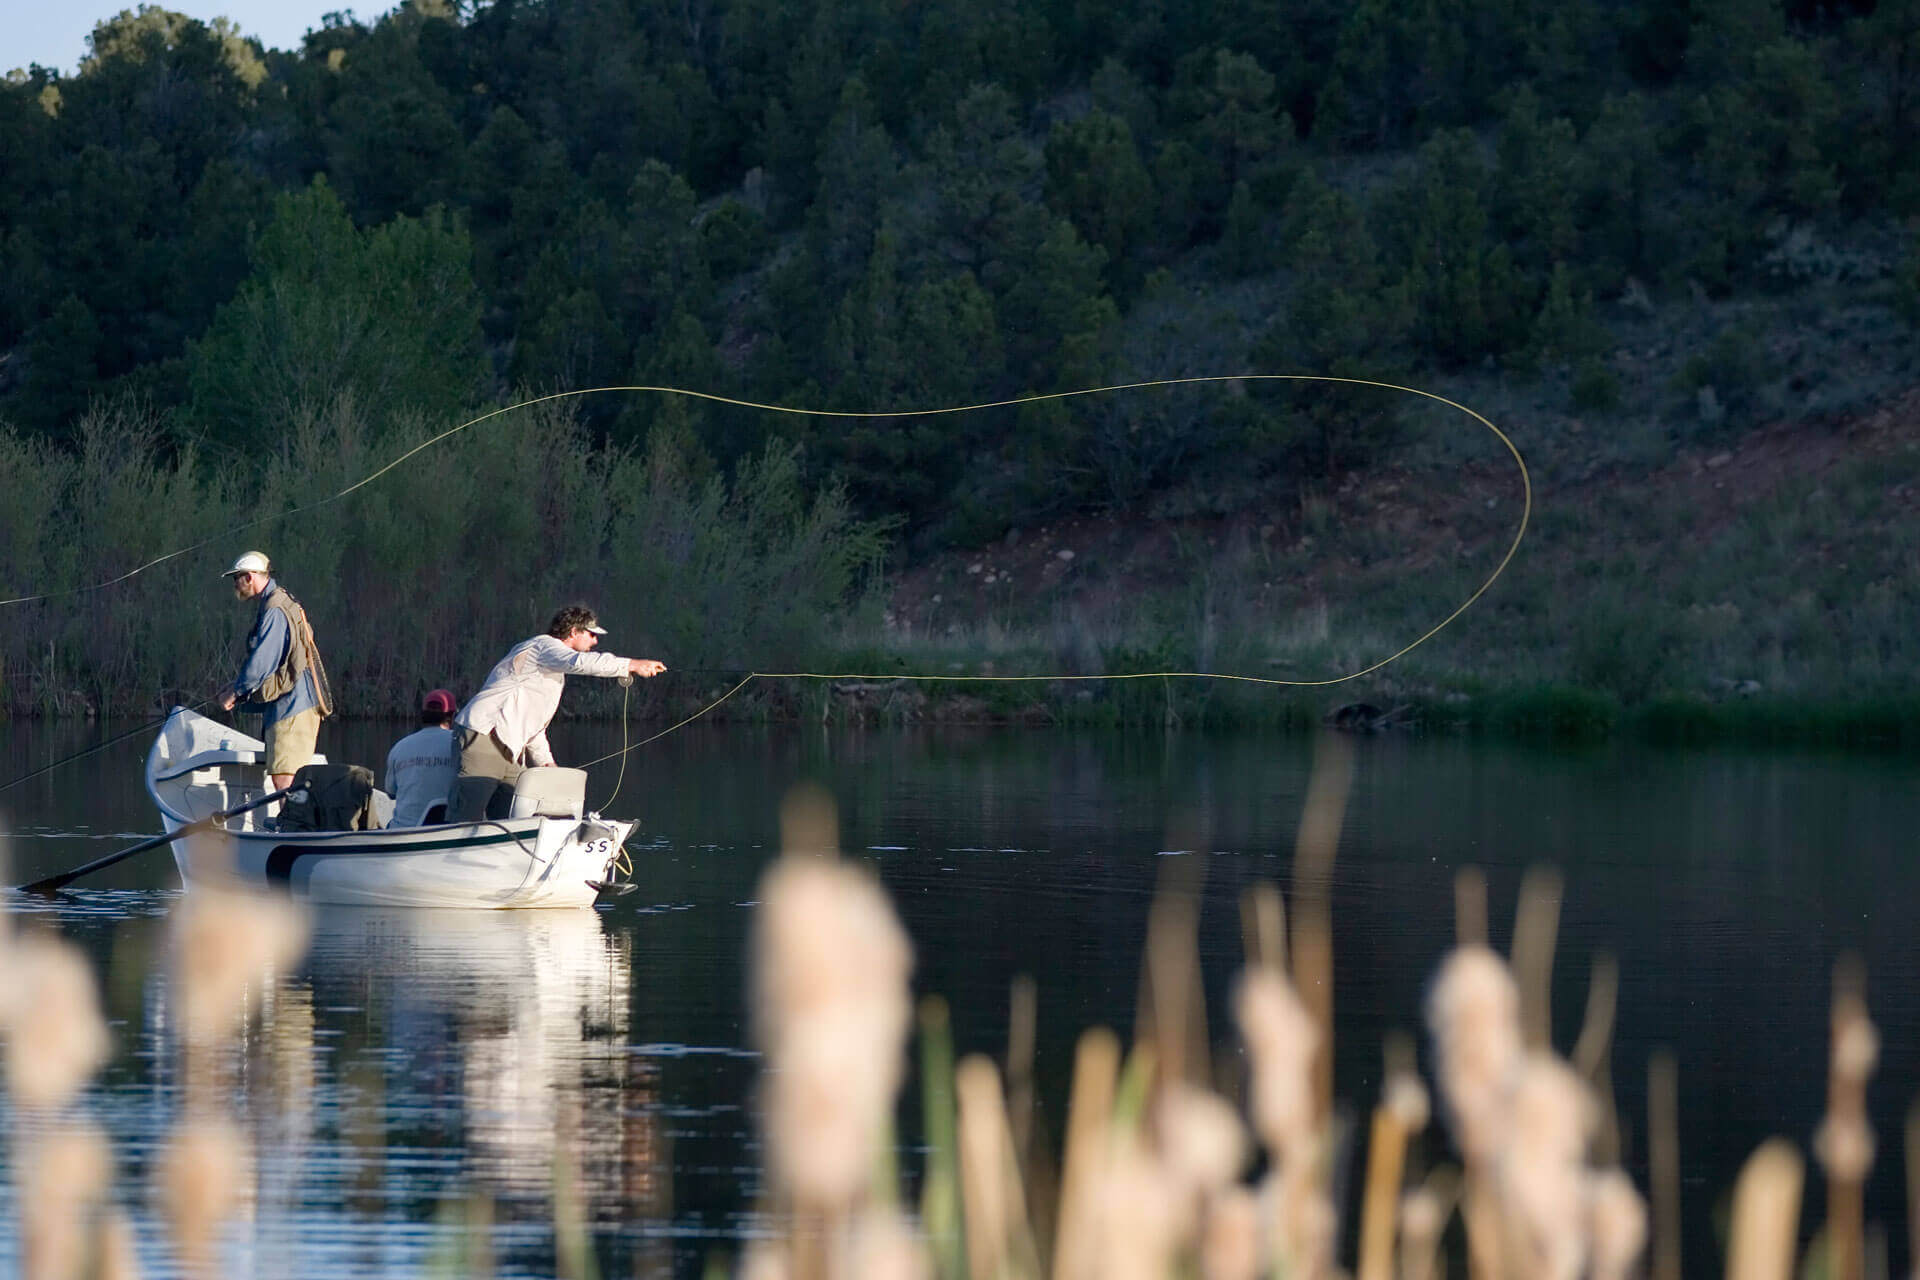 man on a boat in river casting off while fly fishing